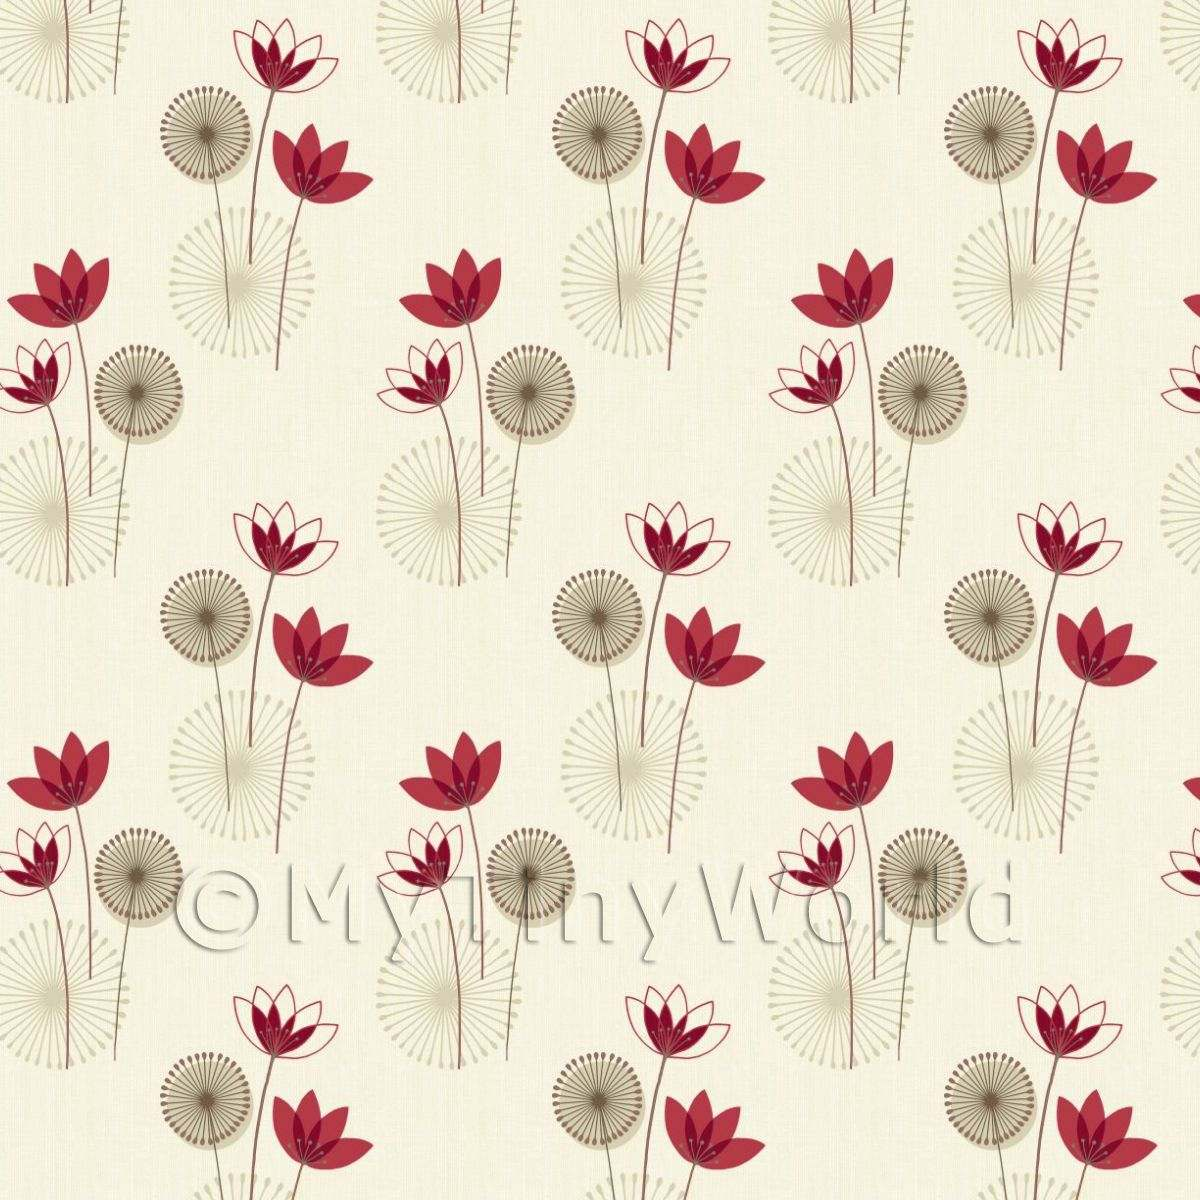 Dolls House Miniature Styalised Red Flower Wallpaper